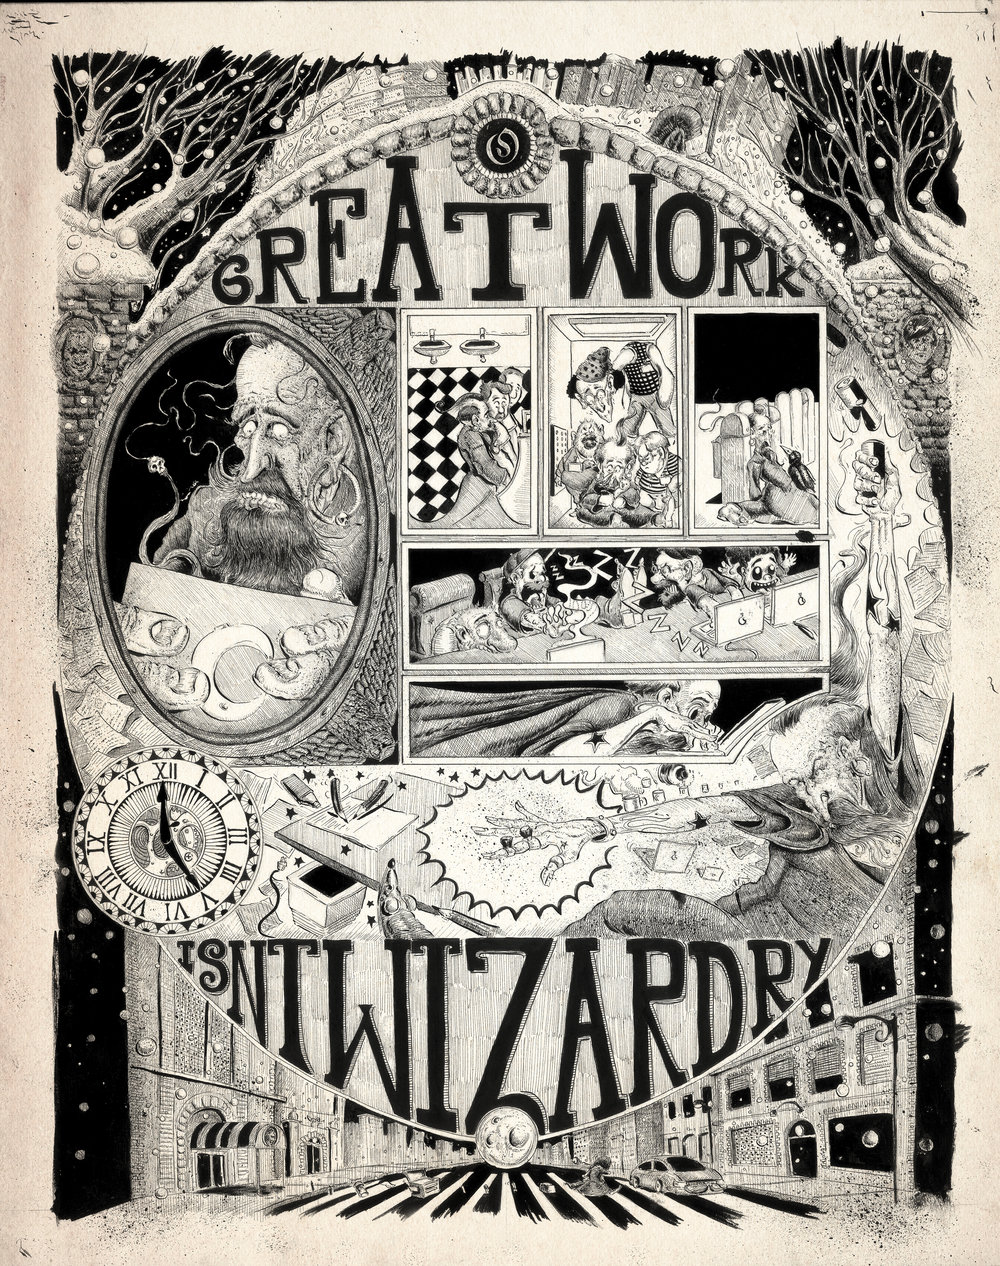 Wizardry: Ben Klein     https://www.benkleinart.com/      https://www.instagram.com/benkleinart/     Ben Klein, a Luxembourg native and San Francisco Academy of Art graduate, gets really detailed. No really, down to an atomic level. This freelance illustrator and story artist takes a magnifying glass to the mundane with his rousing and gritty ink illustrations. In every corner of his work, you'll find whispers of information that quite literally paint the picture. He has mastered blending whimsy and darkness to create distorted art that is just the right amount of unsettling. His poster for Odysseus Arms is proof that great work truly does lie in the details. Not in spells, potions or wizardry as Ben's work might actually lead you to believe.